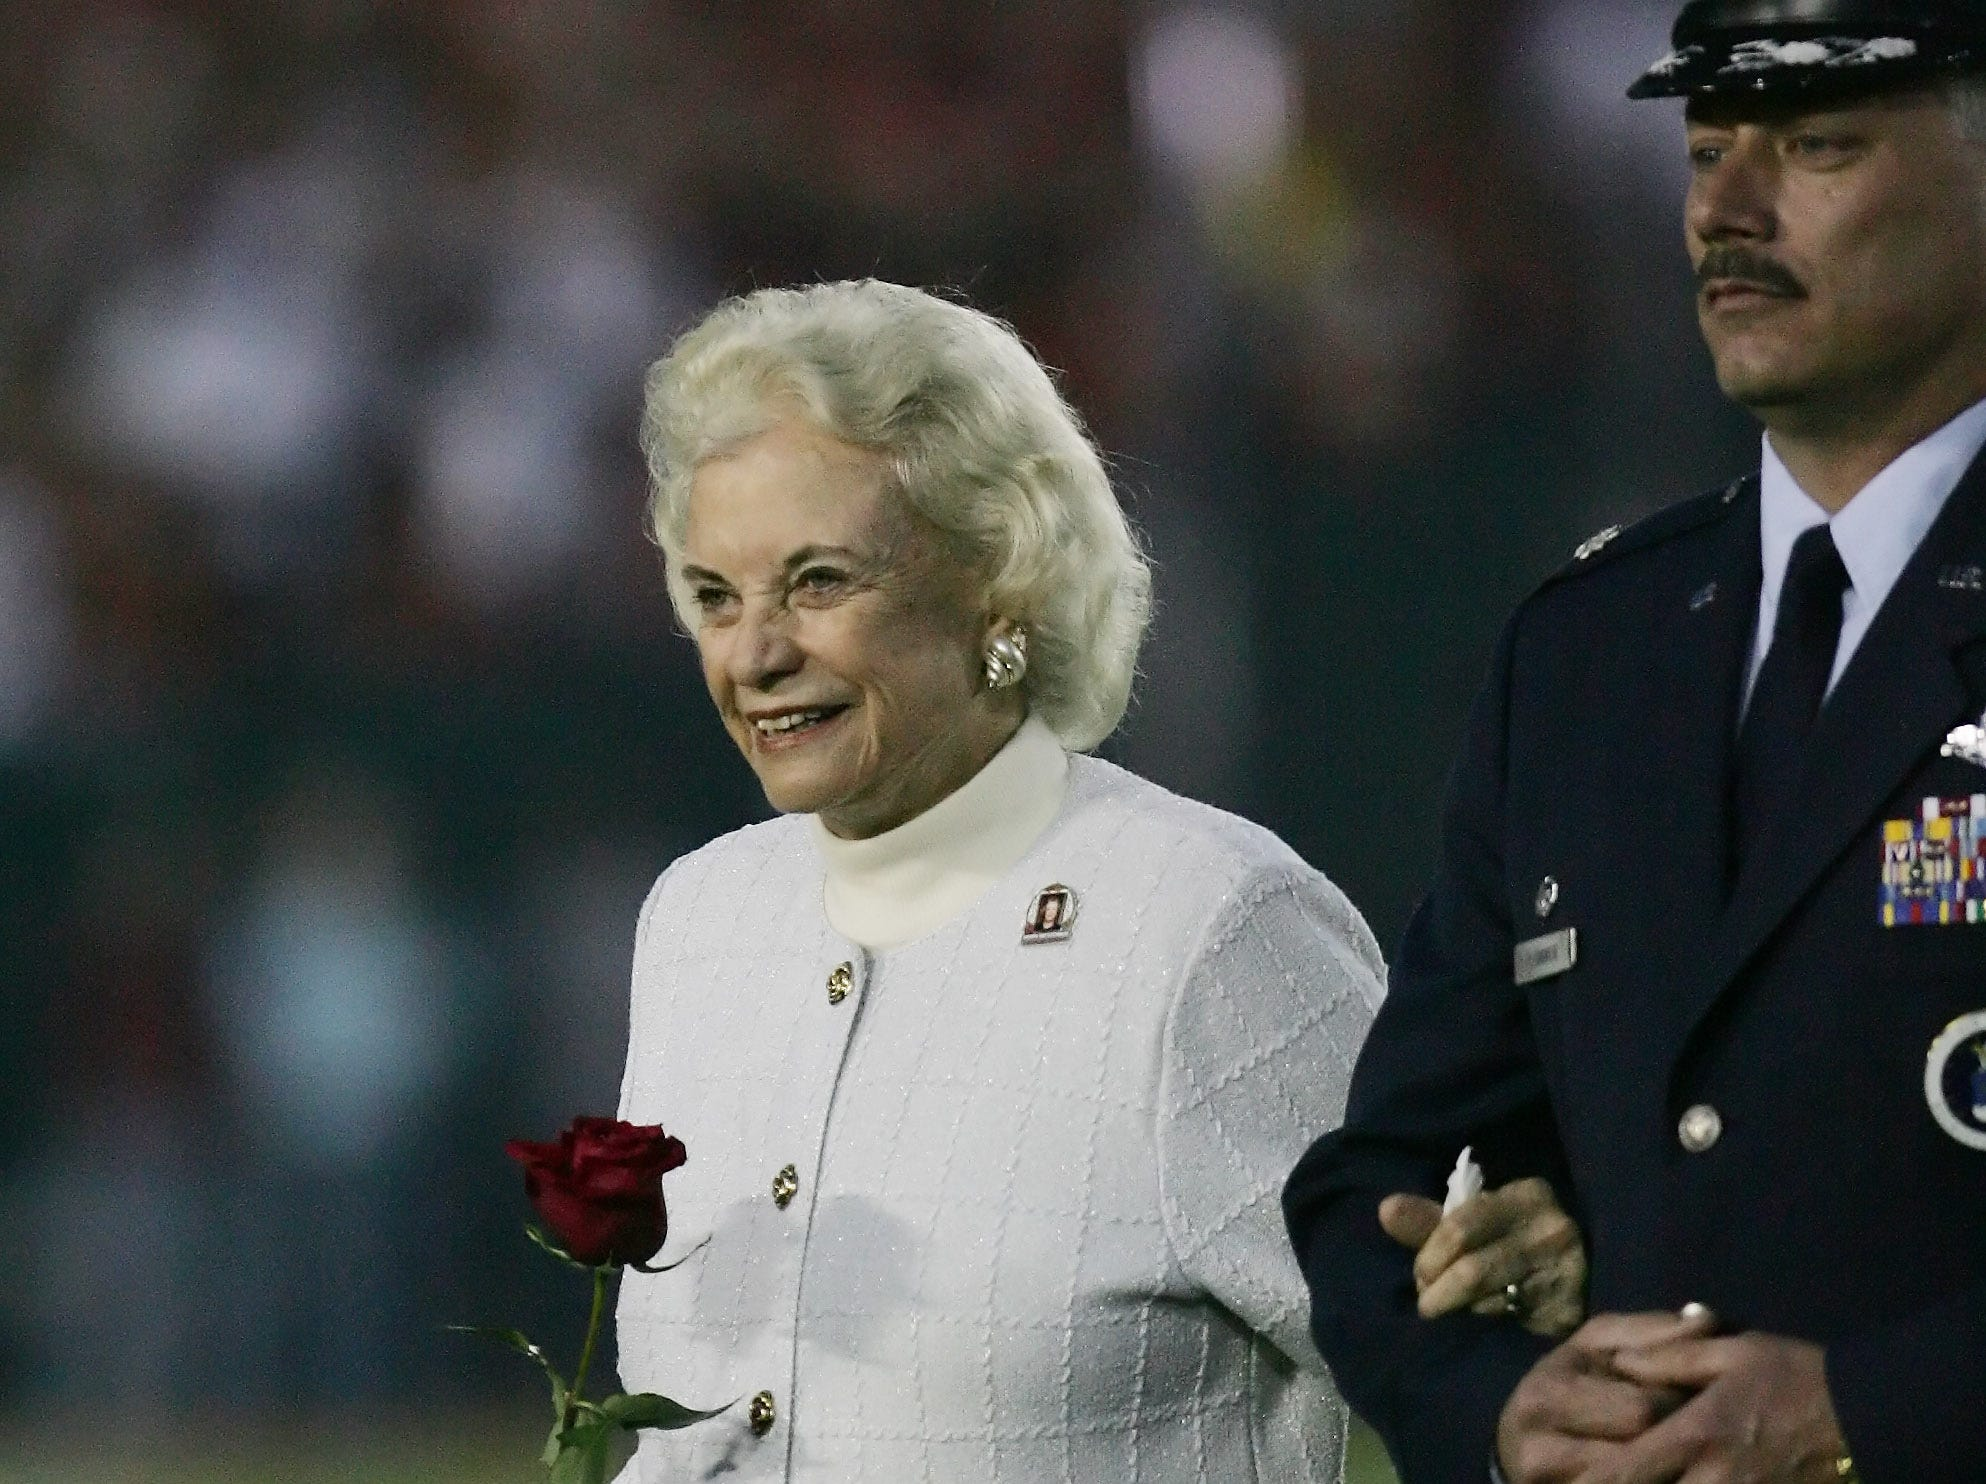 Supreme Court Justice Sandra Day O'Connor is escorted from the field following the coin toss before Texas met Southern California in the Rose Bowl, the national championship college football game in Pasadena, Calif., Wednesday, Jan. 4, 2006.